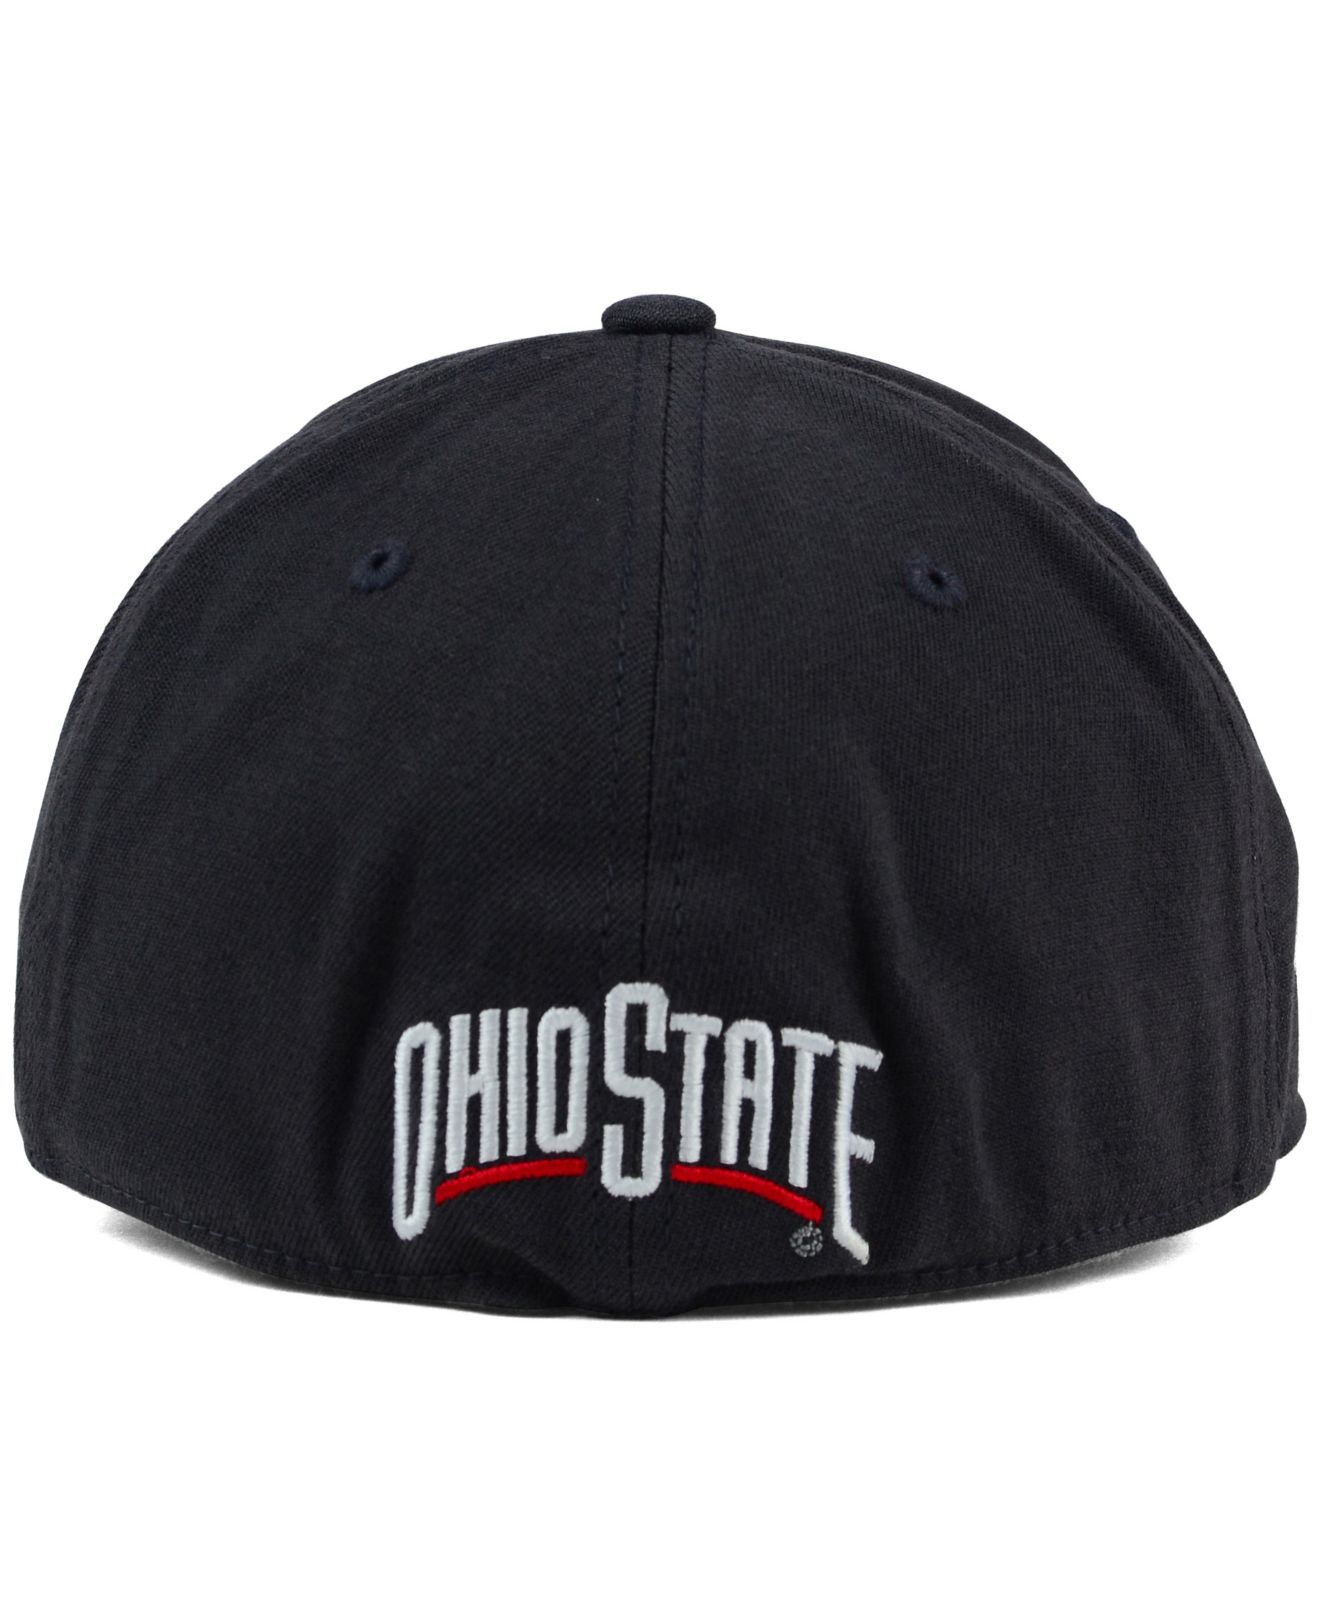 super popular a925e 11e3d germany nike ohio state buckeyes heather pom knit hat 300cc 9a325  purchase  lyst j america ohio state buckeyes stunt block stretch cap in acc86 50e26